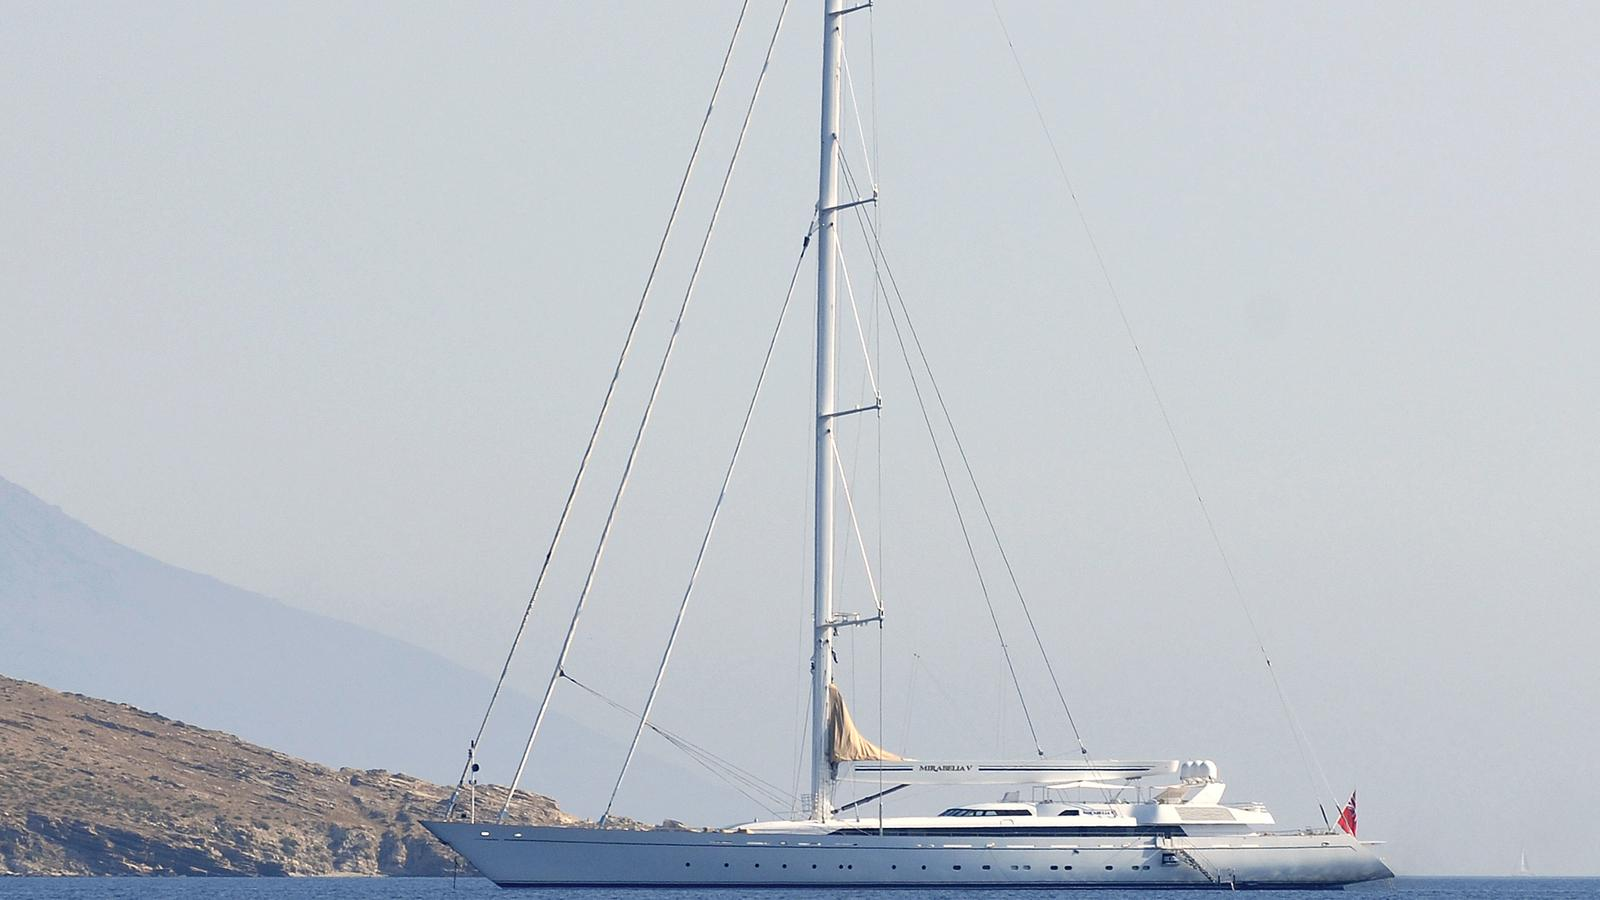 m5-super-yacht-sailing-boat